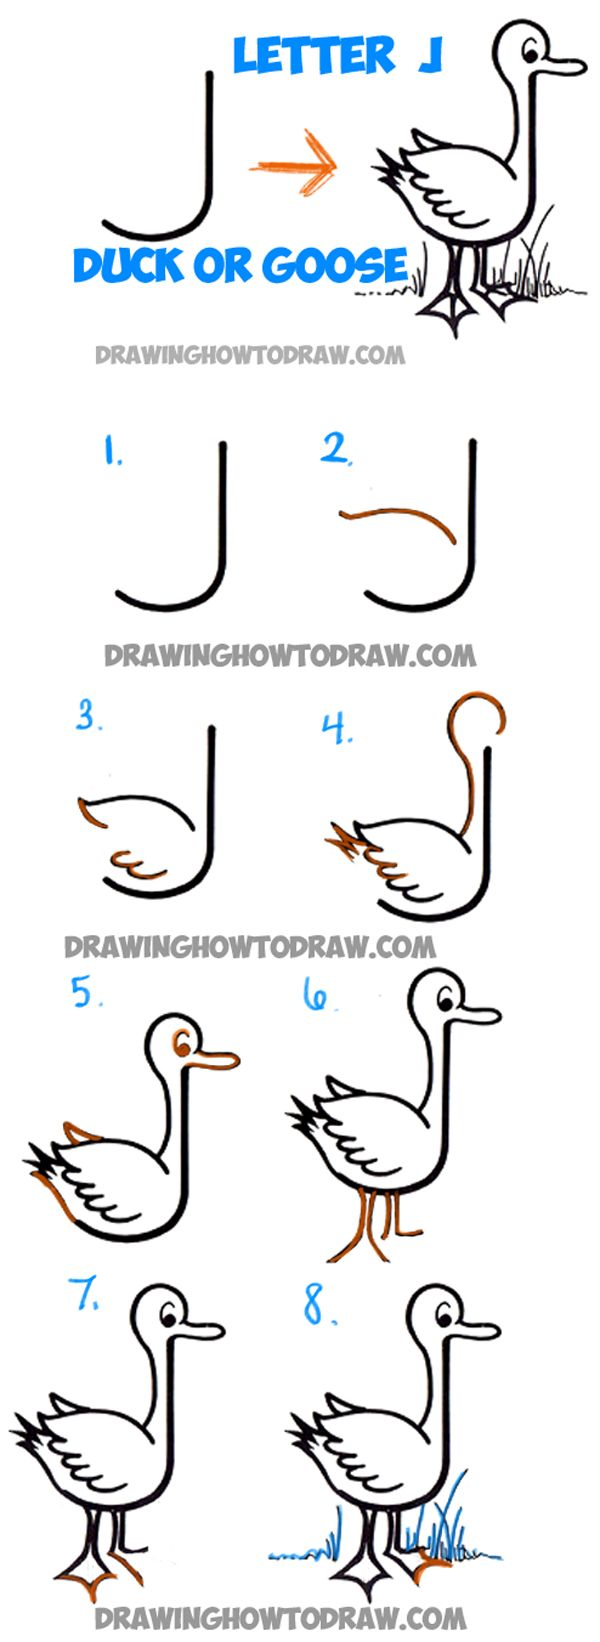 Learn How to Draw Cartoon Goose or Duck from Letter J Shape - Simple Steps Drawing Tutorial for Kids